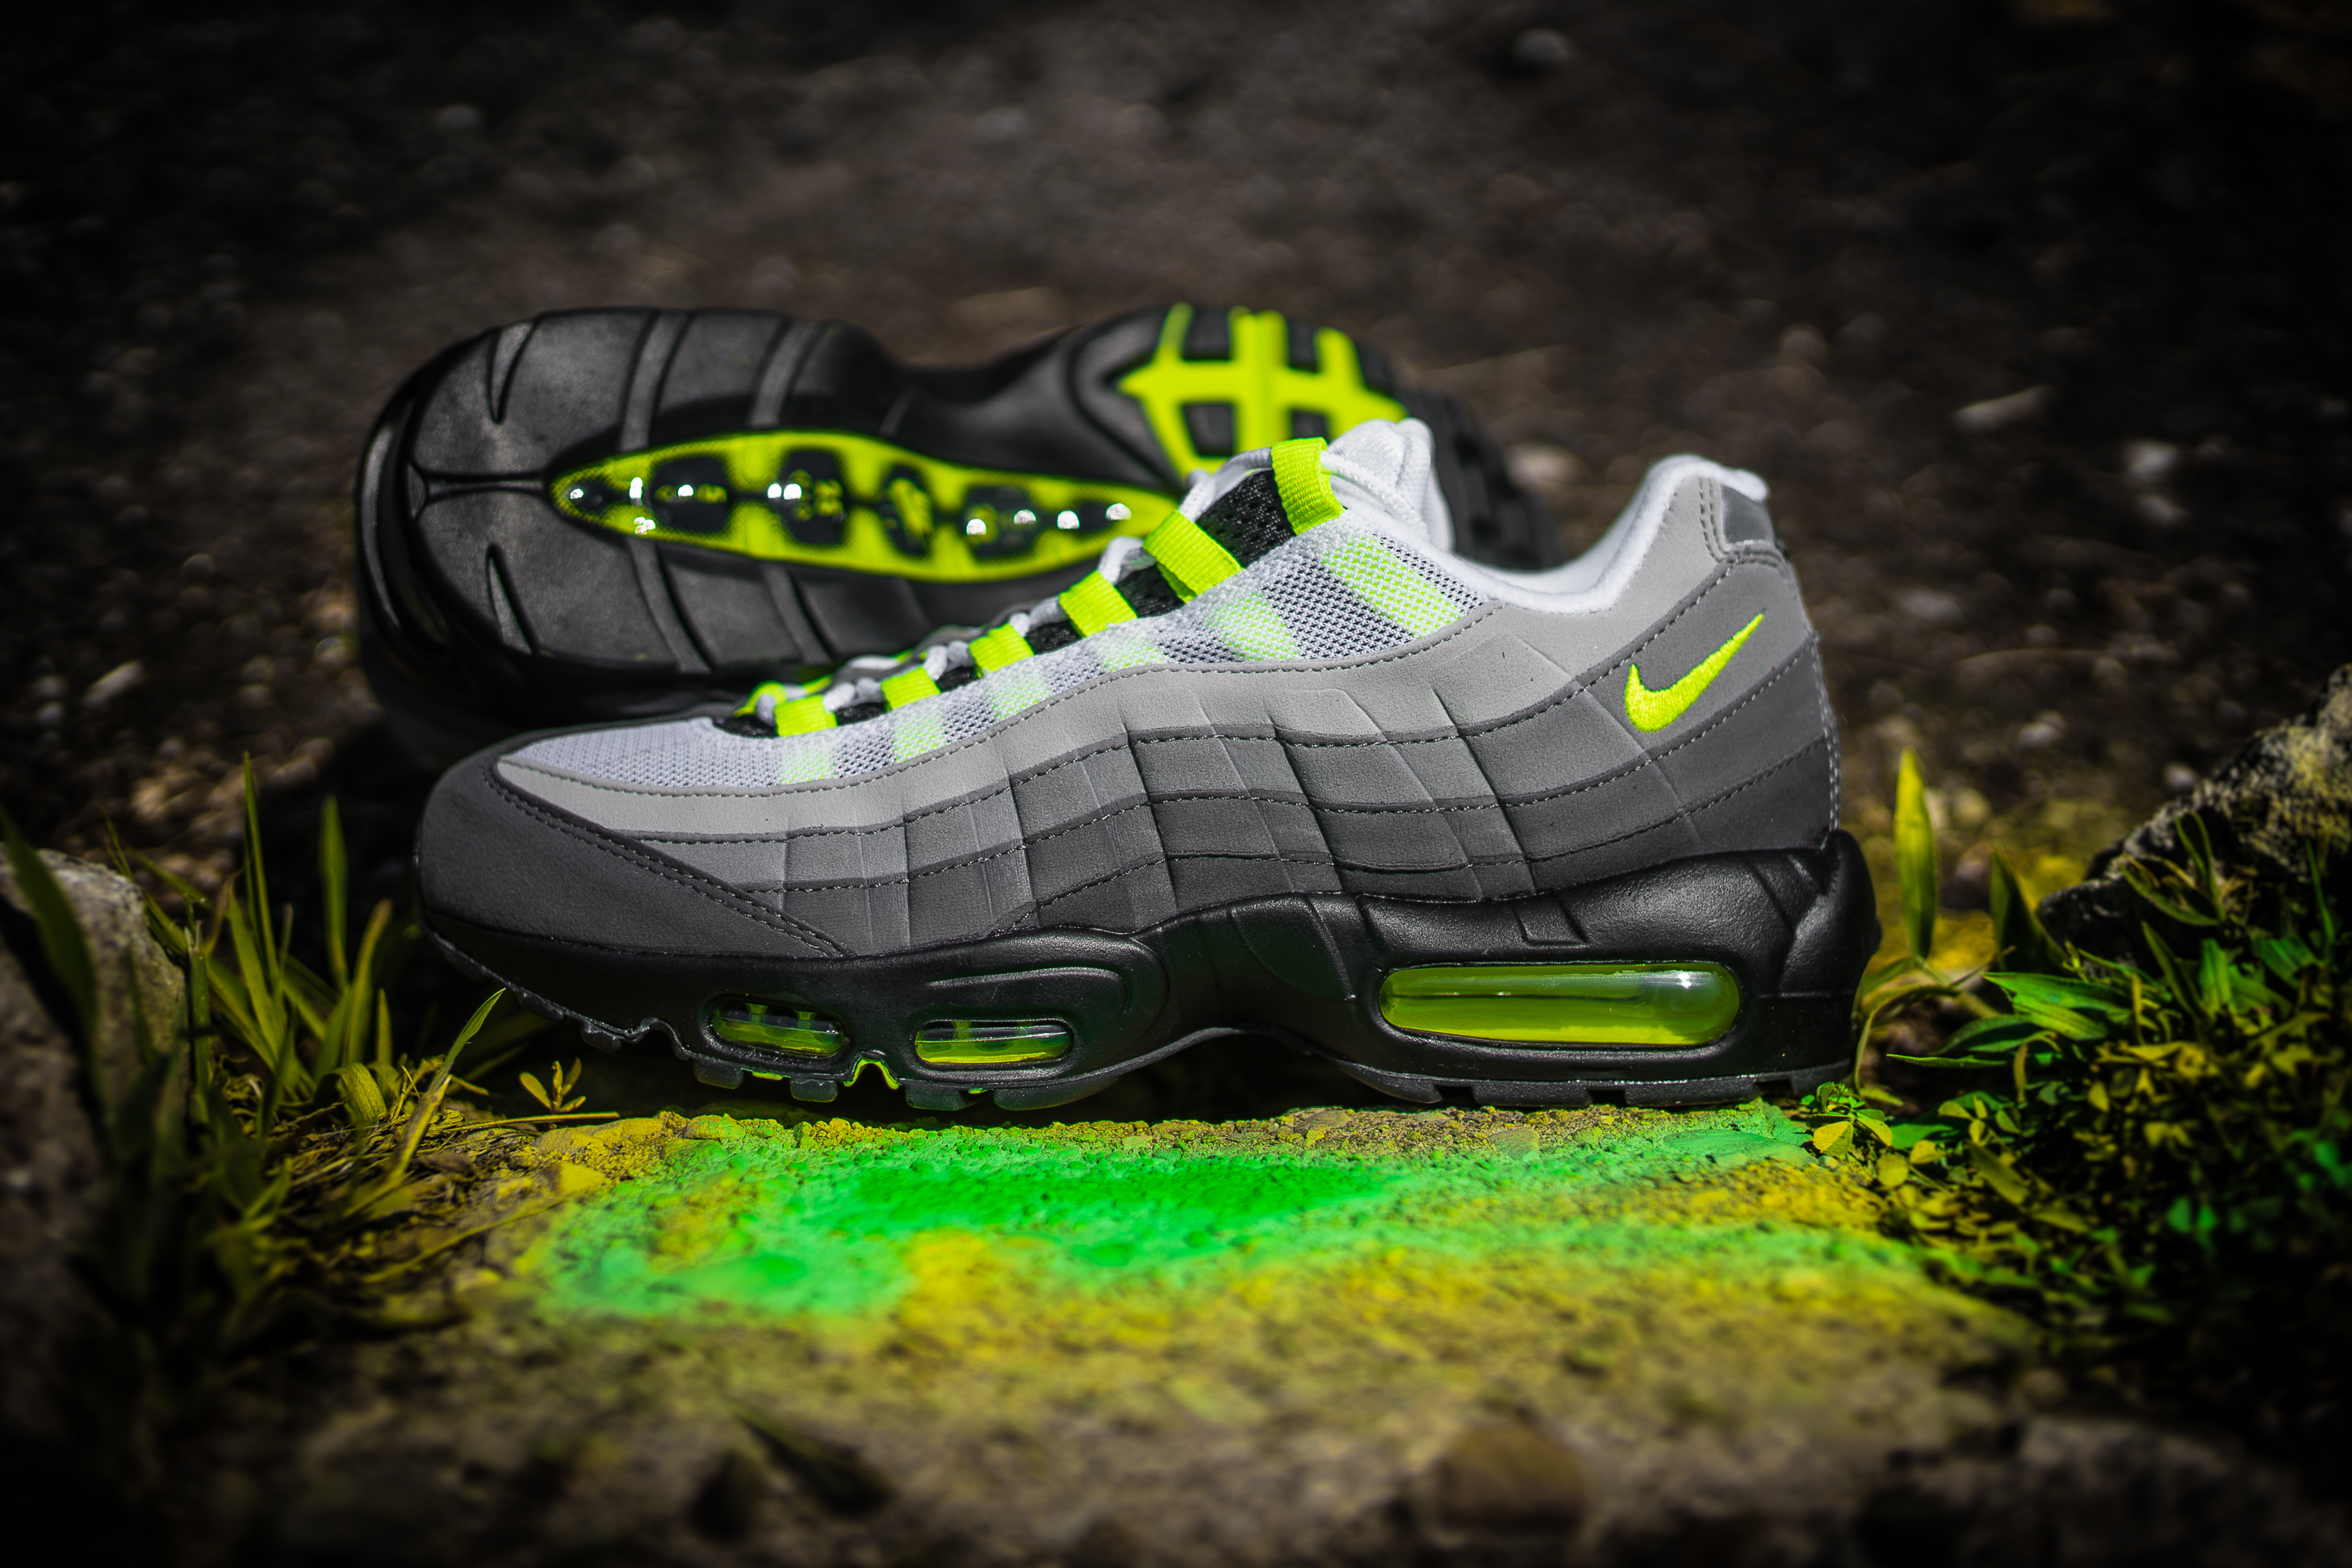 nike air max 95 og neon launching 7 25 packer shoes. Black Bedroom Furniture Sets. Home Design Ideas